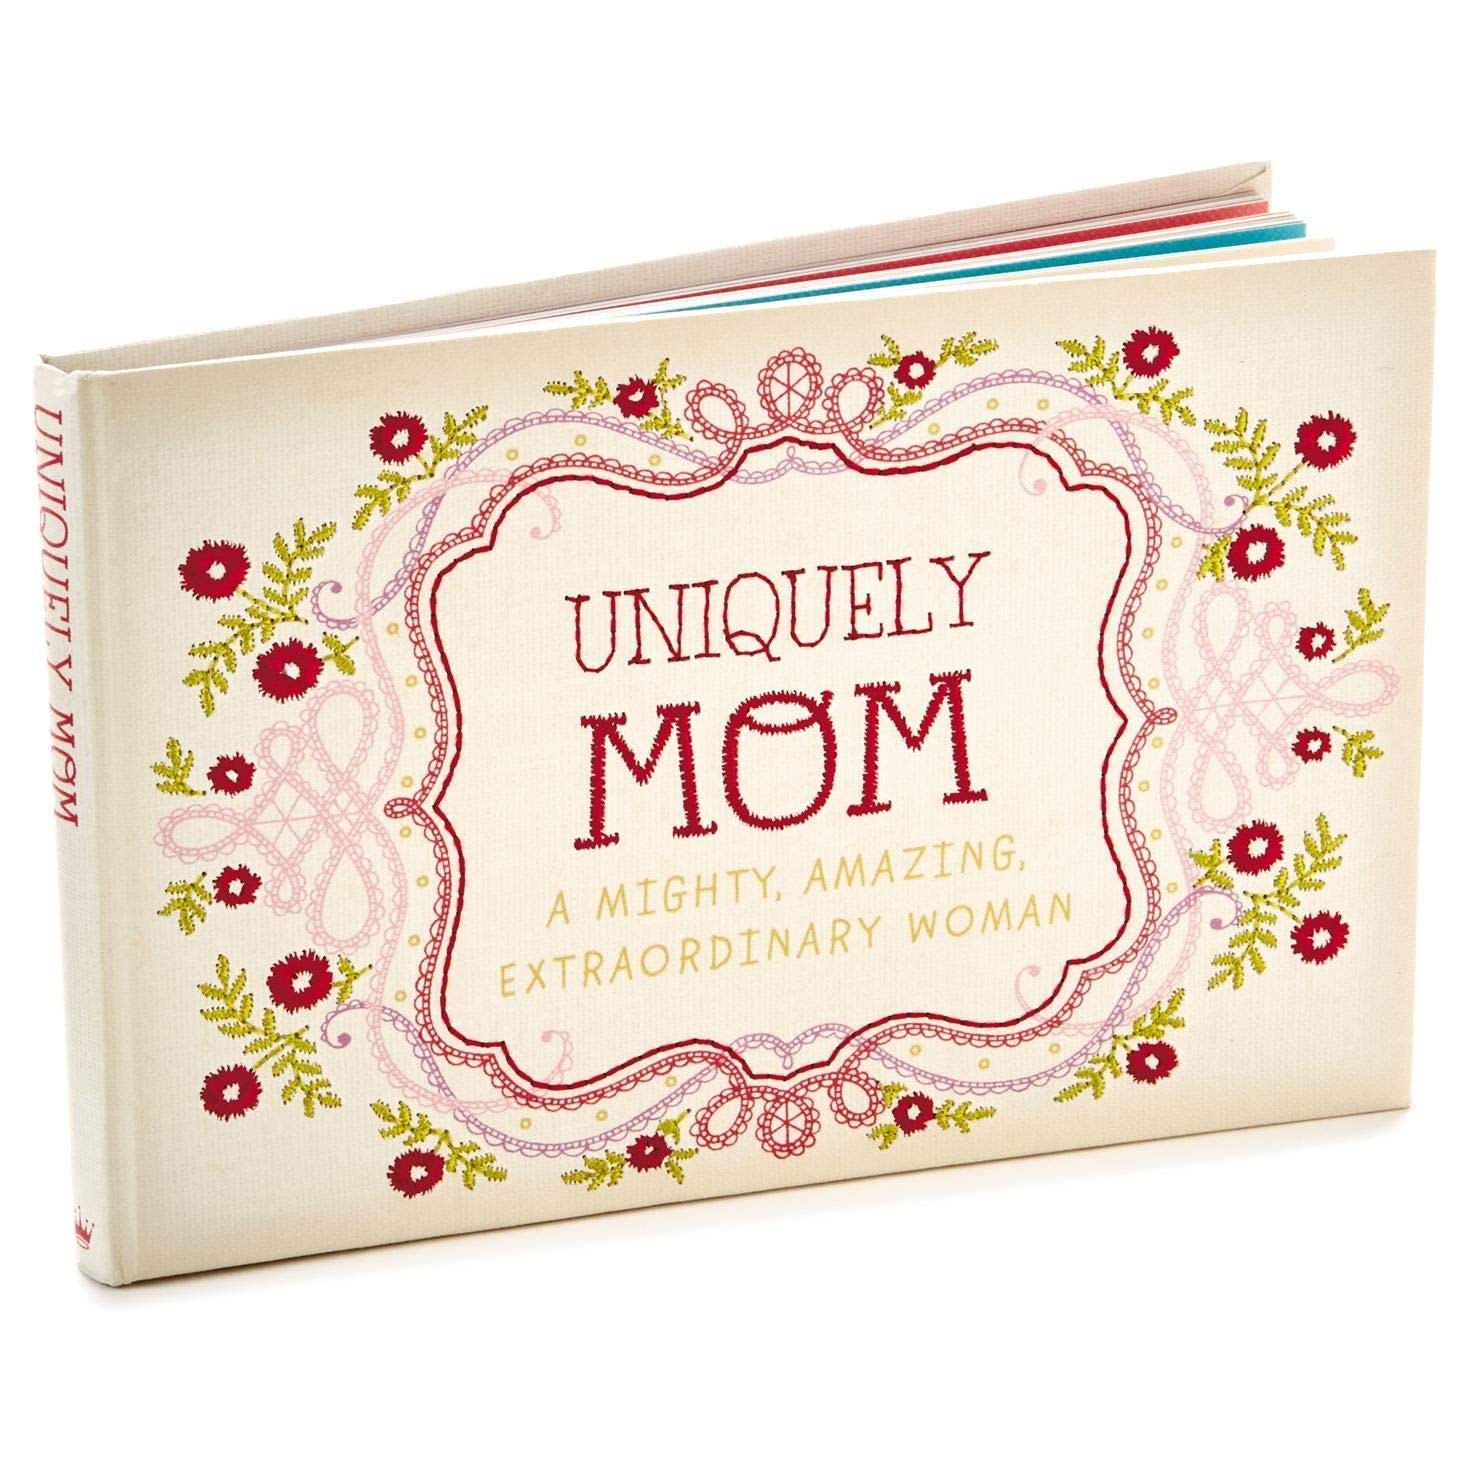 Hallmark Uniquely Mom Gift Book Relationship Books Family & Relationships